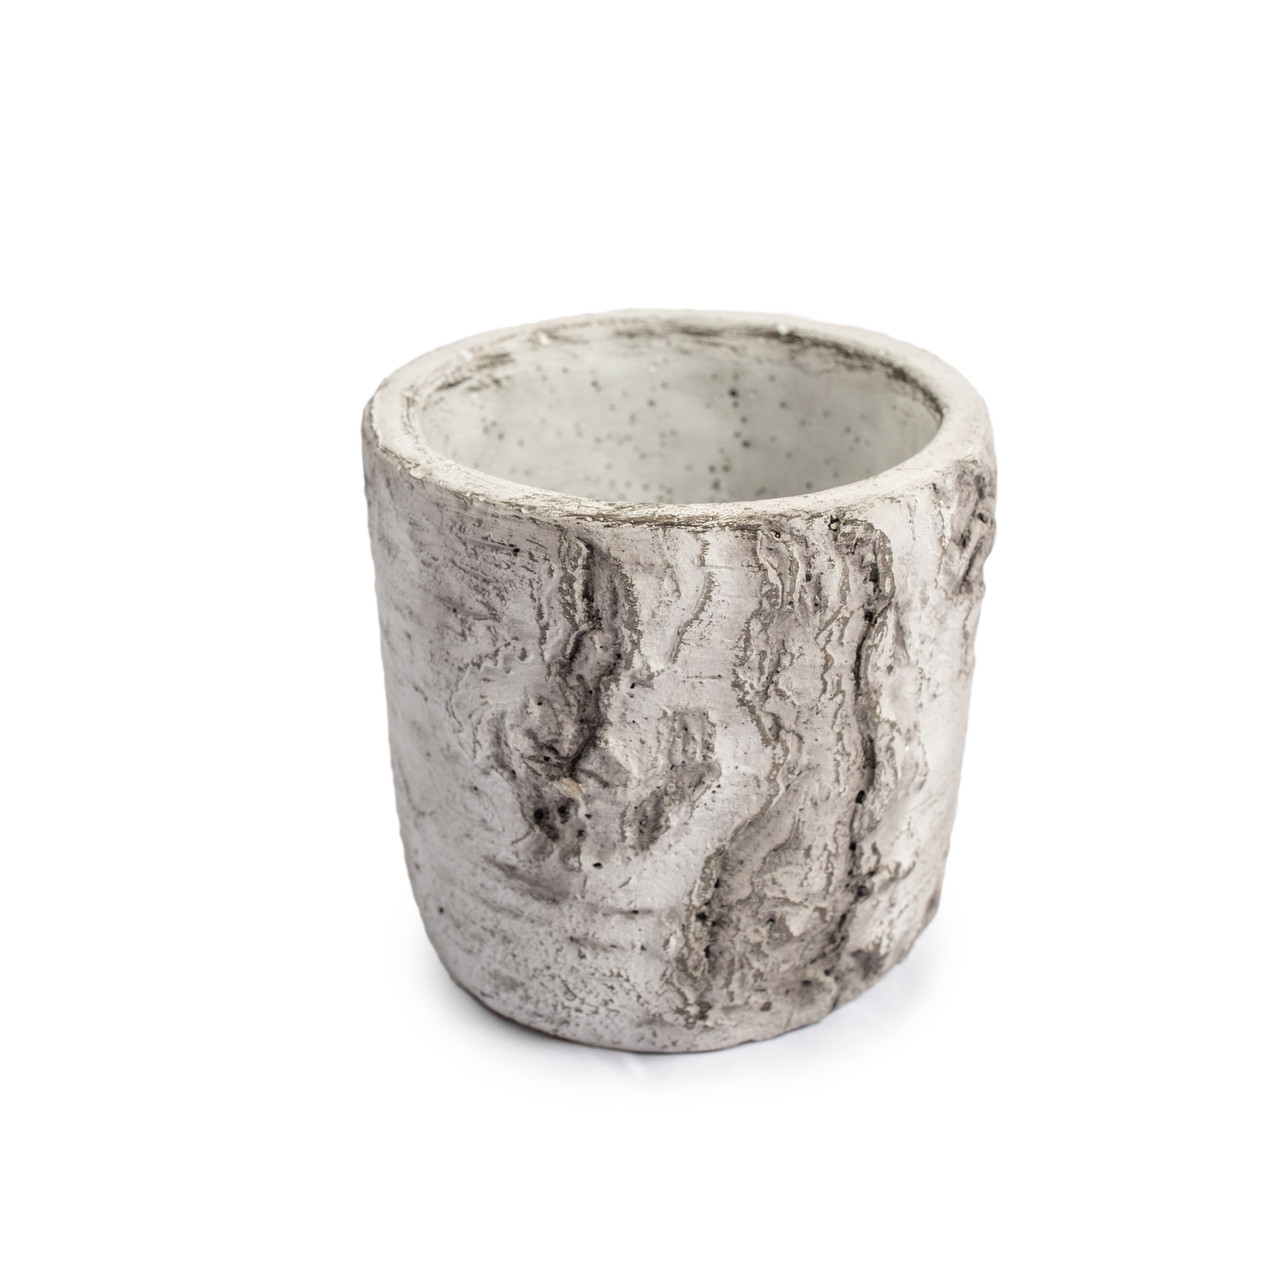 Small Cement Pot with Rounded Bottom